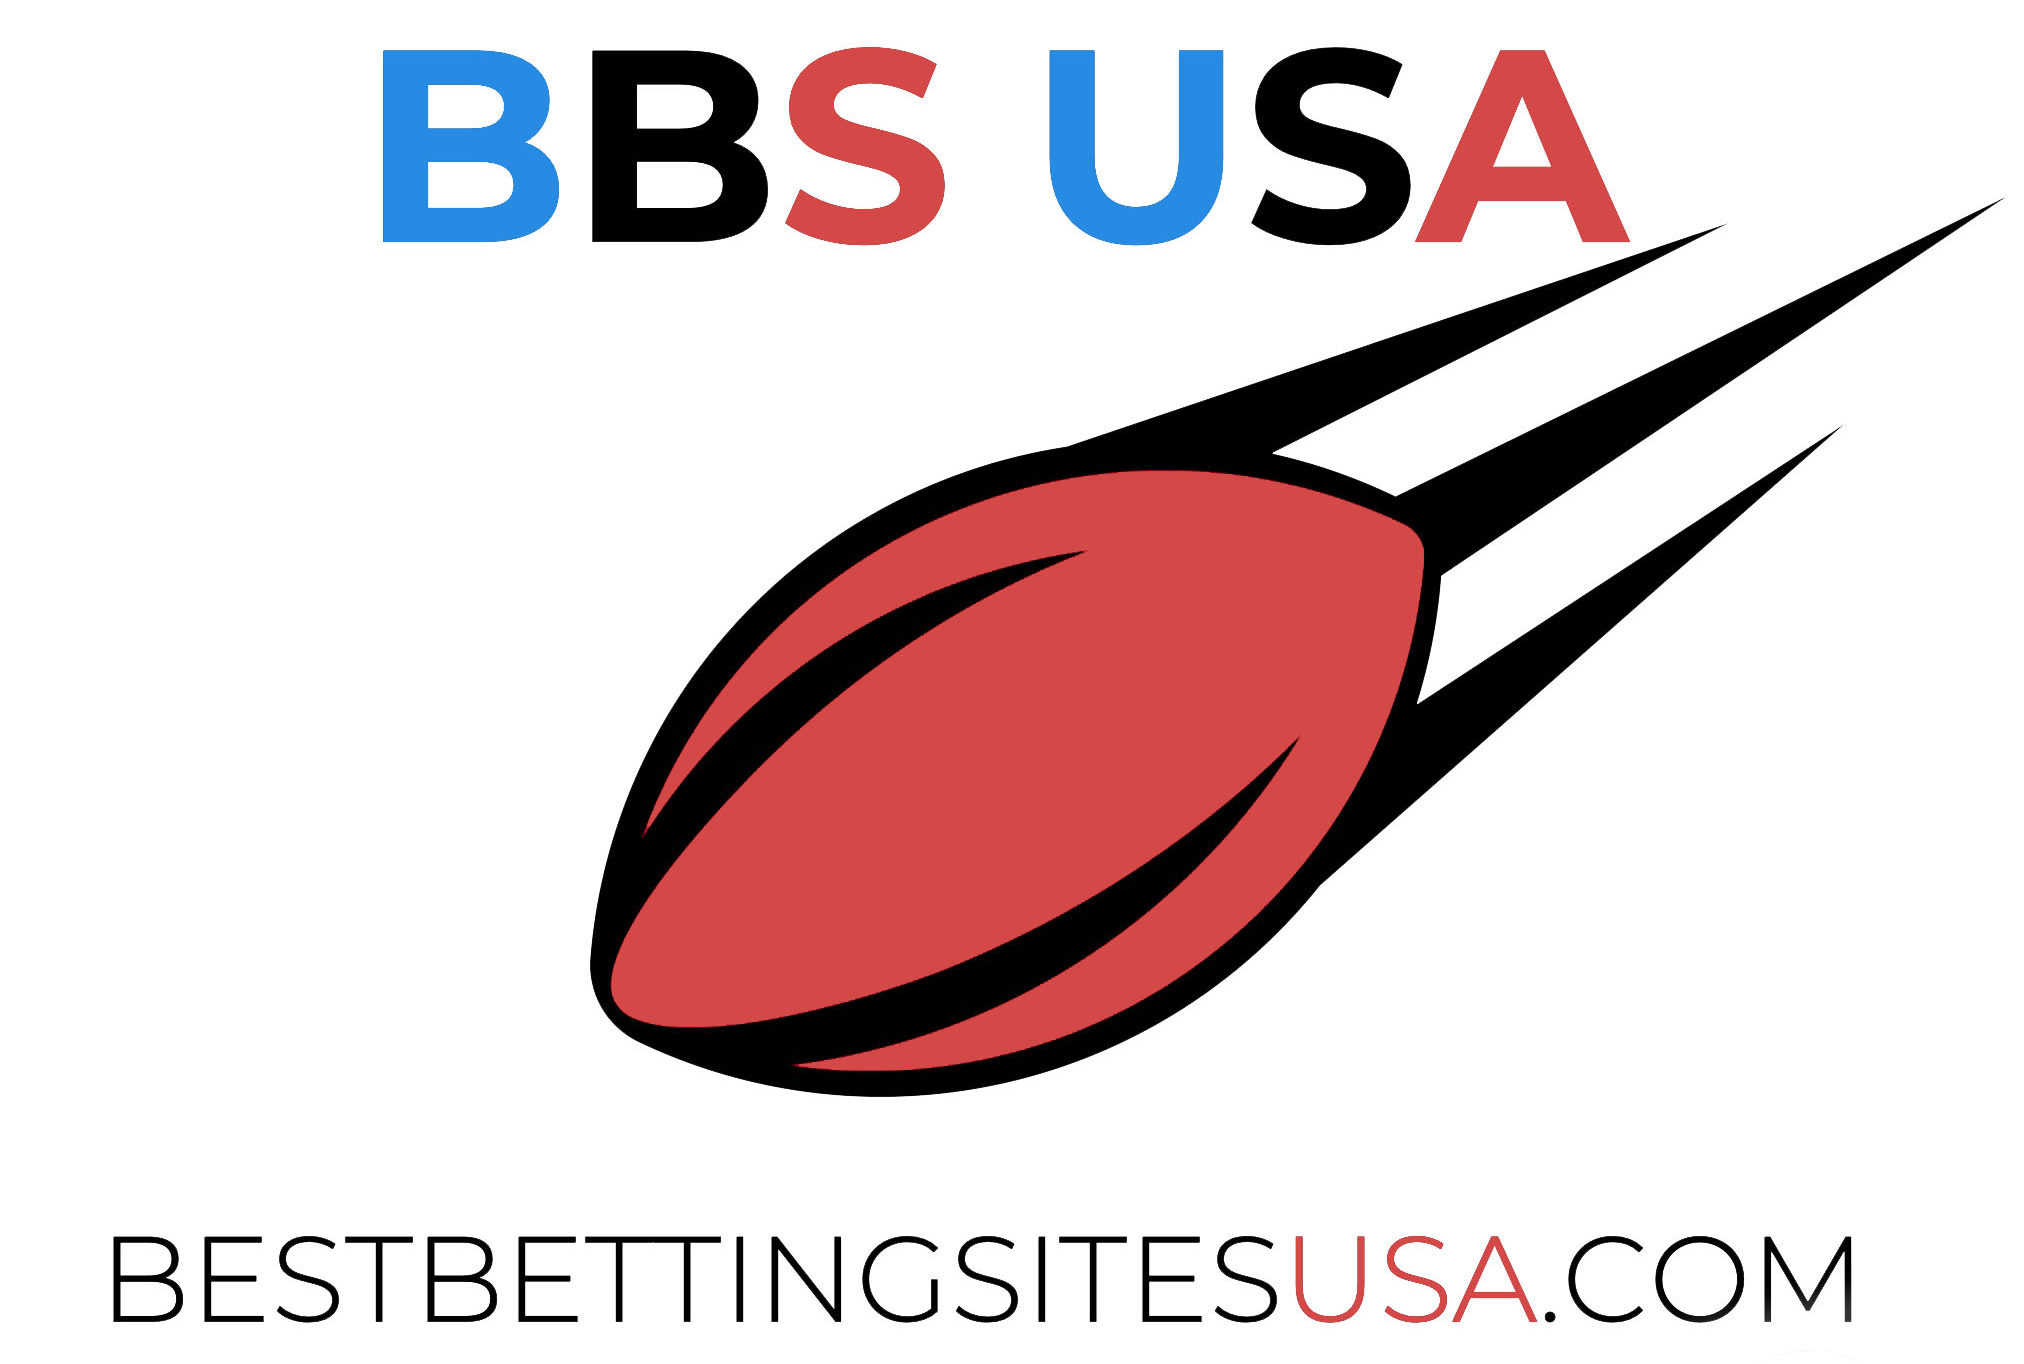 The best betting sites for USA gamblers